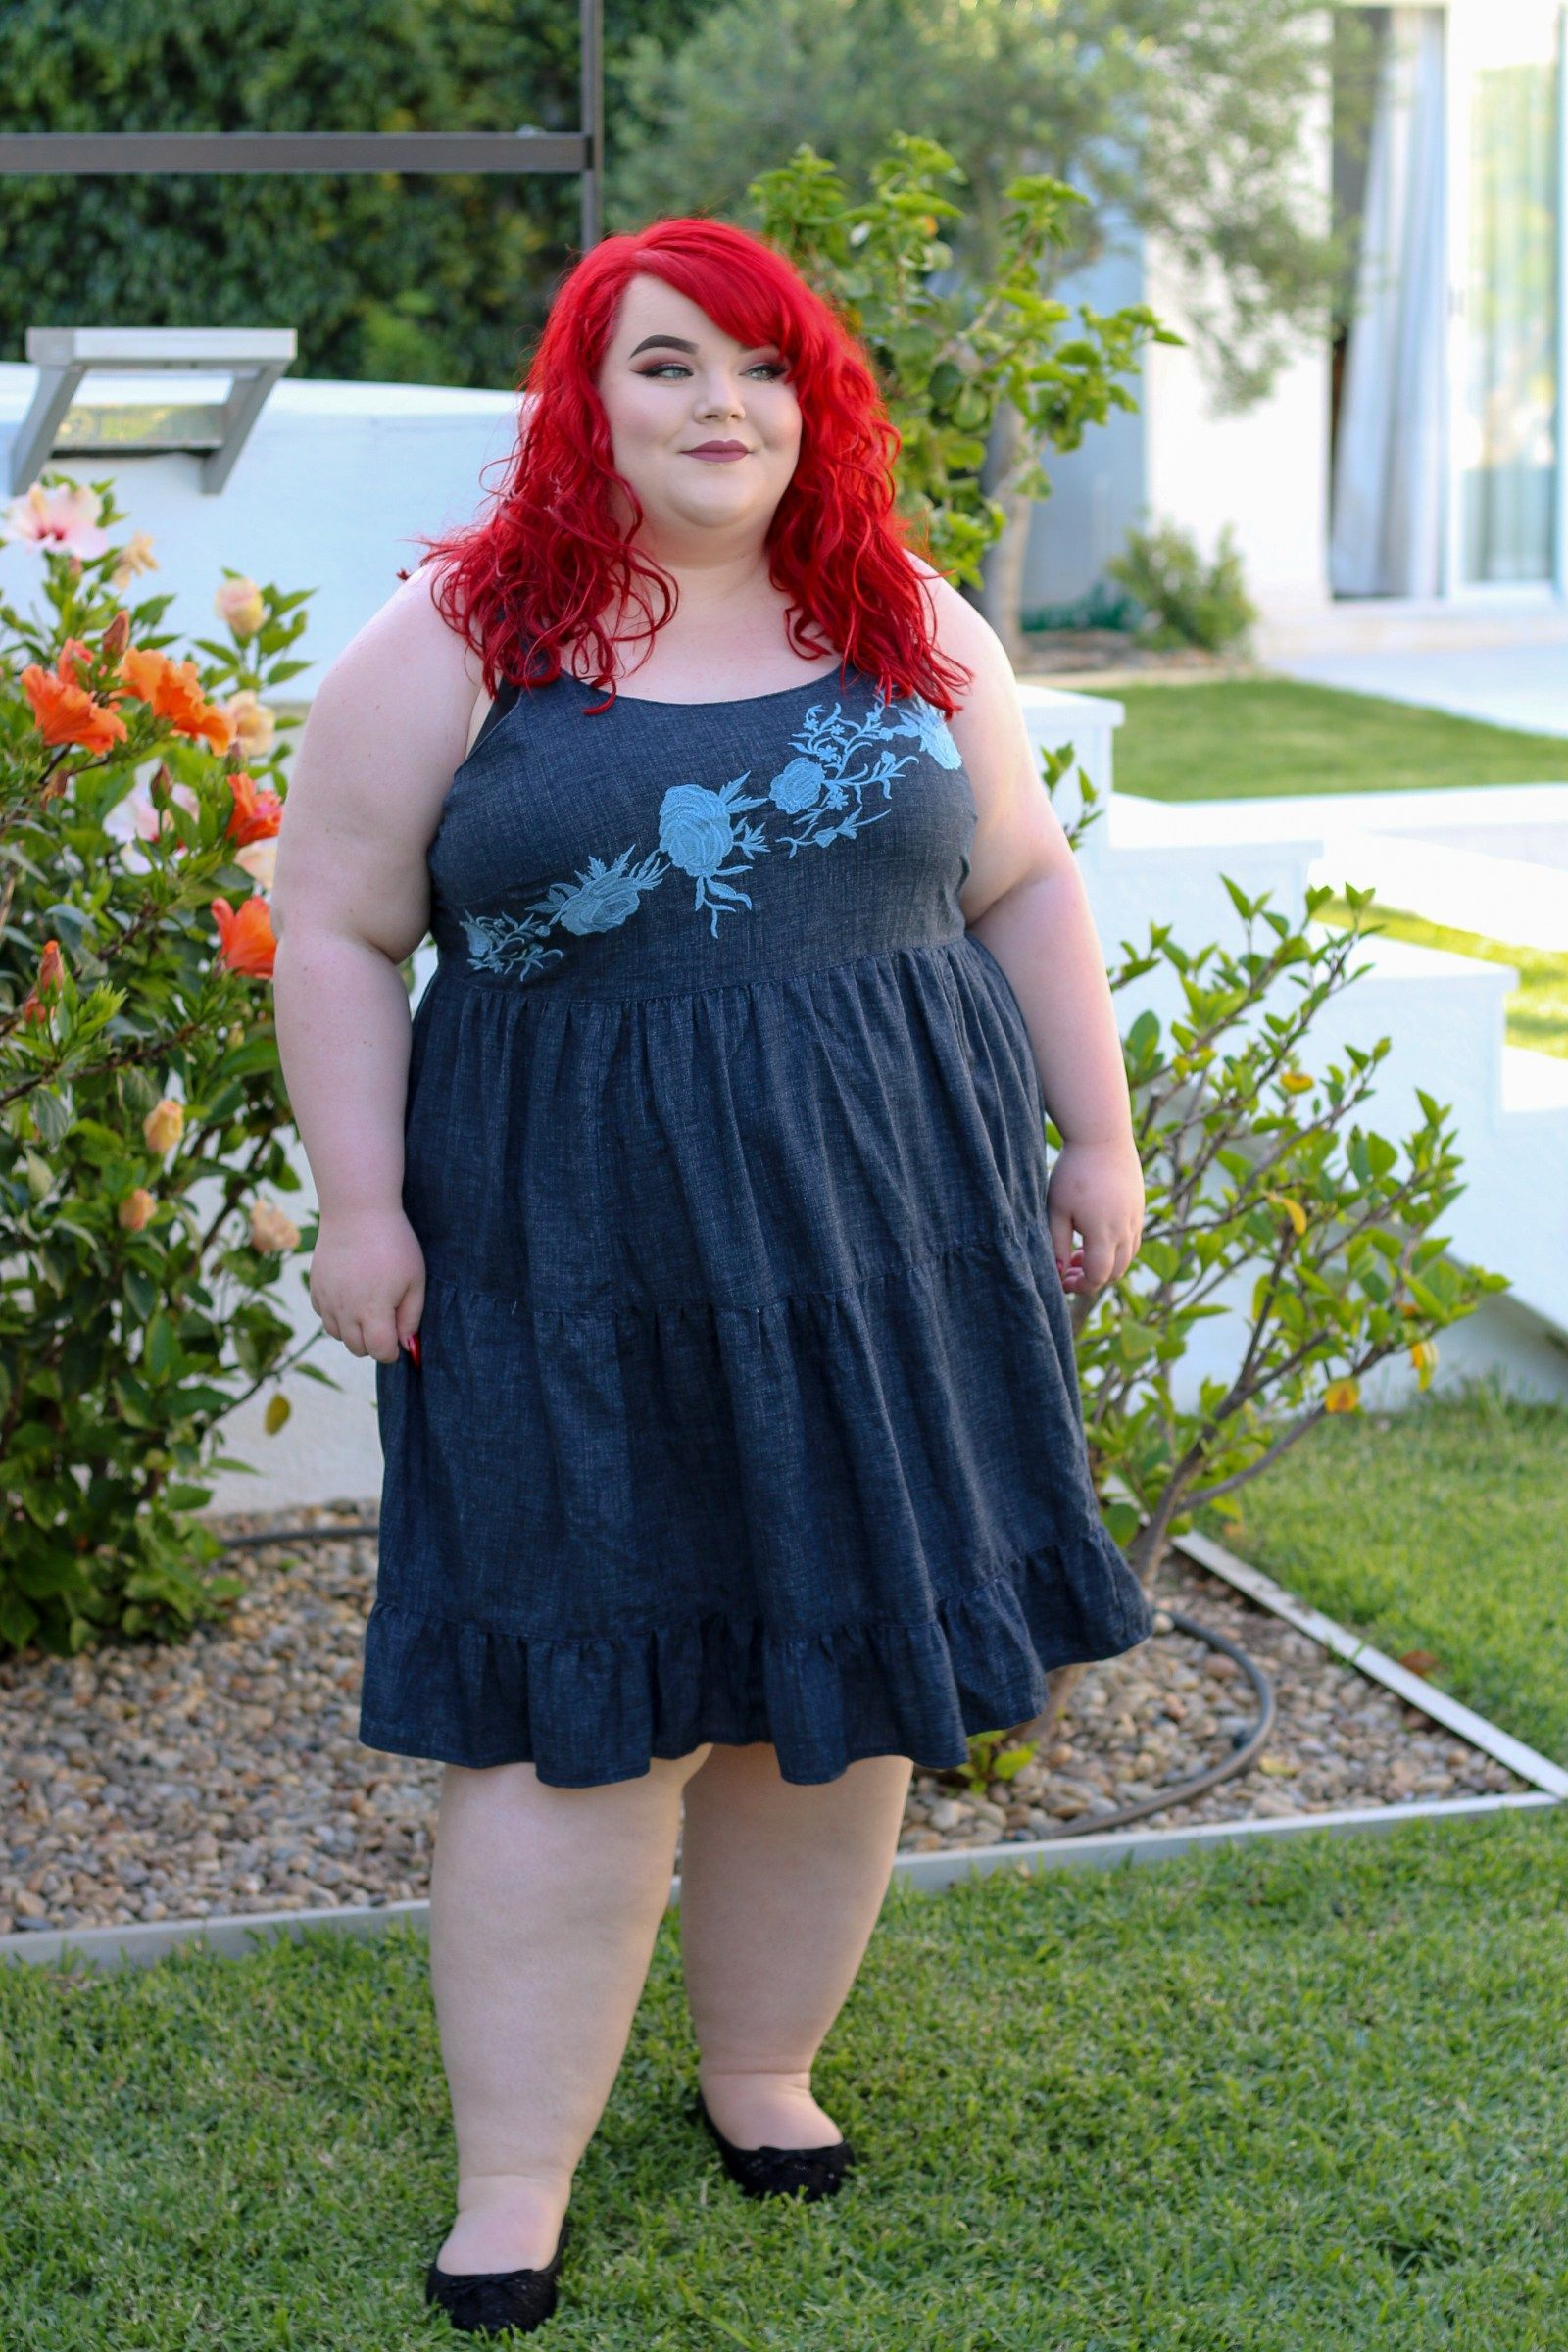 Does georgina bbw red head remarkable